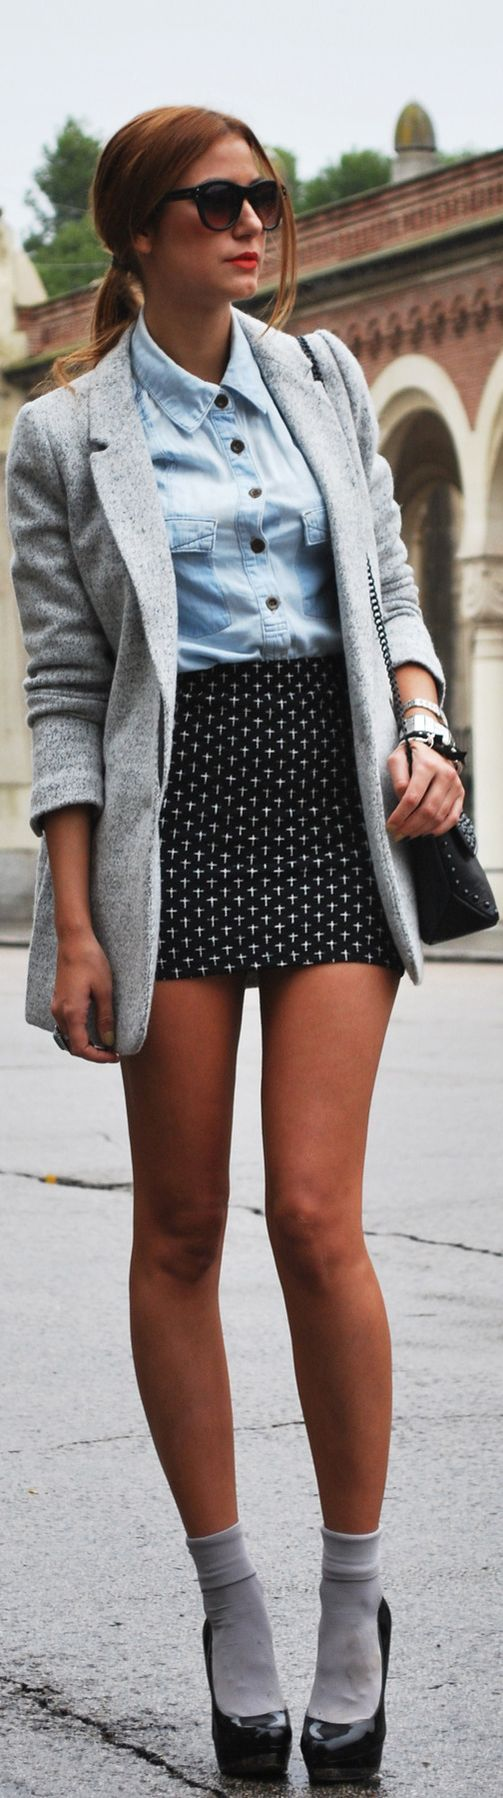 Love playing with different lengths- pairing a long boyfriend blazer with a short skirt/ skirts. Also, may want to try pairing rolled over socks with a pair of pumps to give it more of a schoolgirl look.